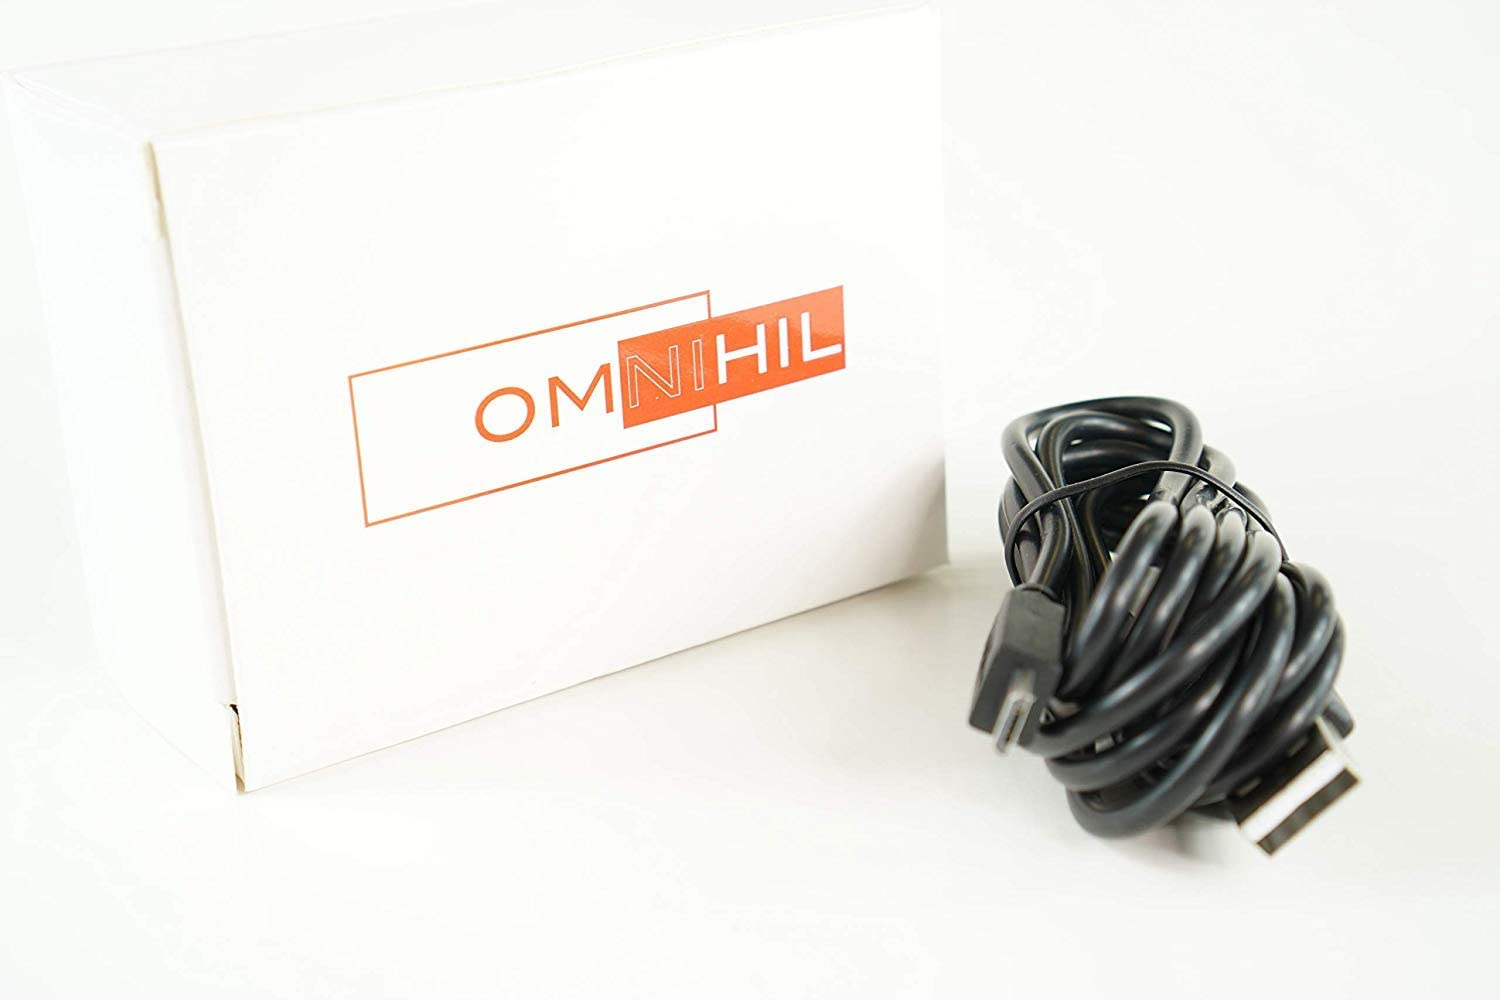 OMNIHIL 30 Feet Long High Speed USB 2.0 Cable Compatible with Motorola Talkabout T465 Radio